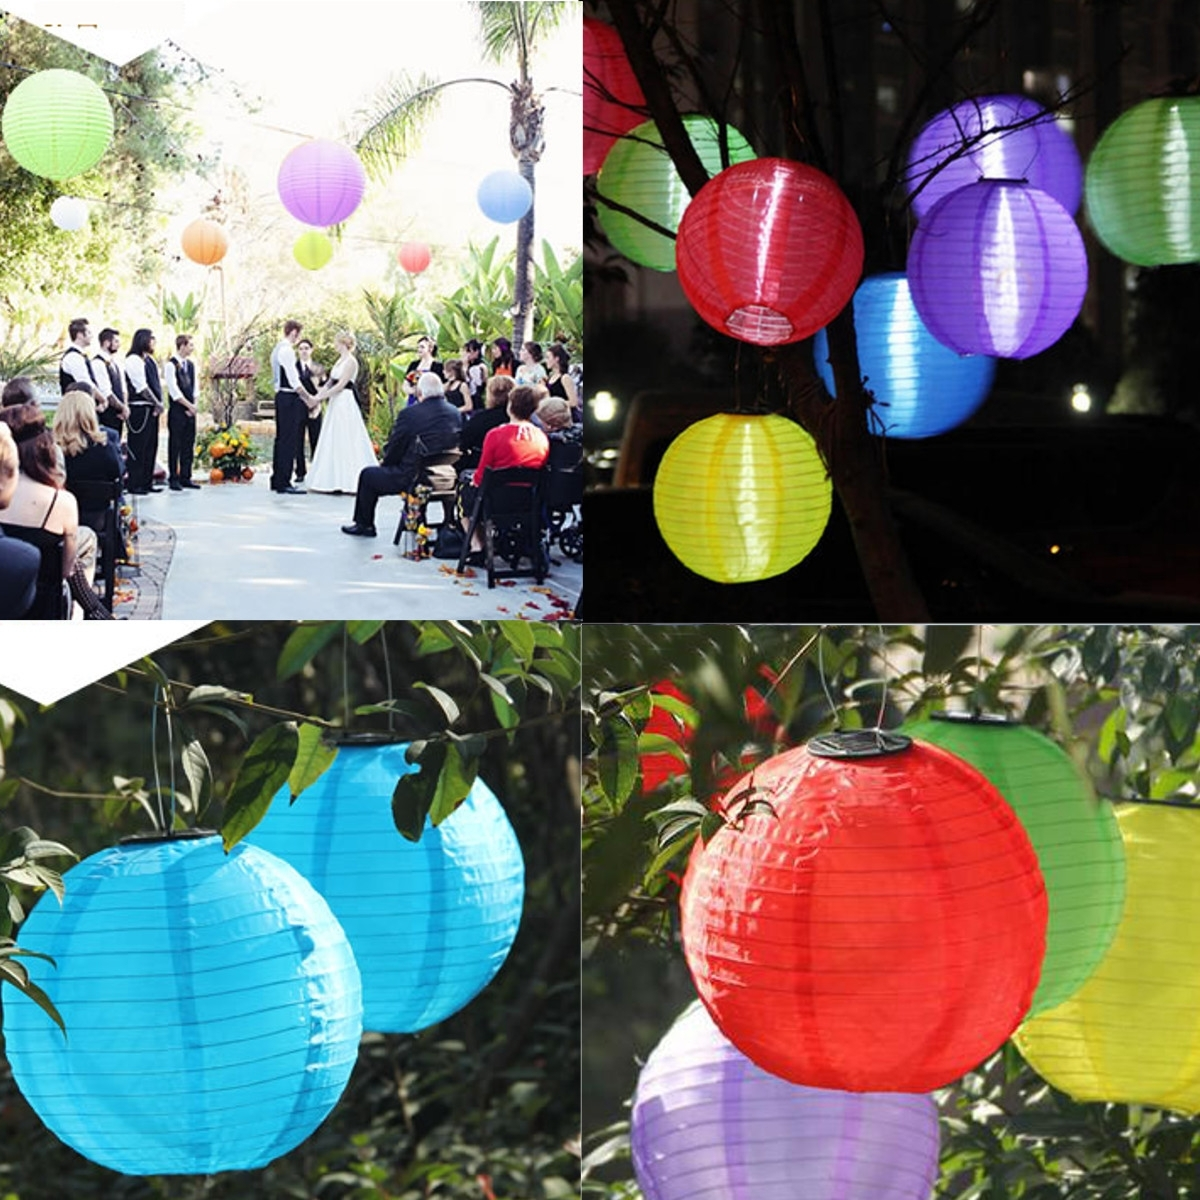 Halloween Party Led Nylon Lantern 44Cm Outdoor Solar Power Chinese Inside Popular Outdoor Nylon Lanterns (Gallery 11 of 20)